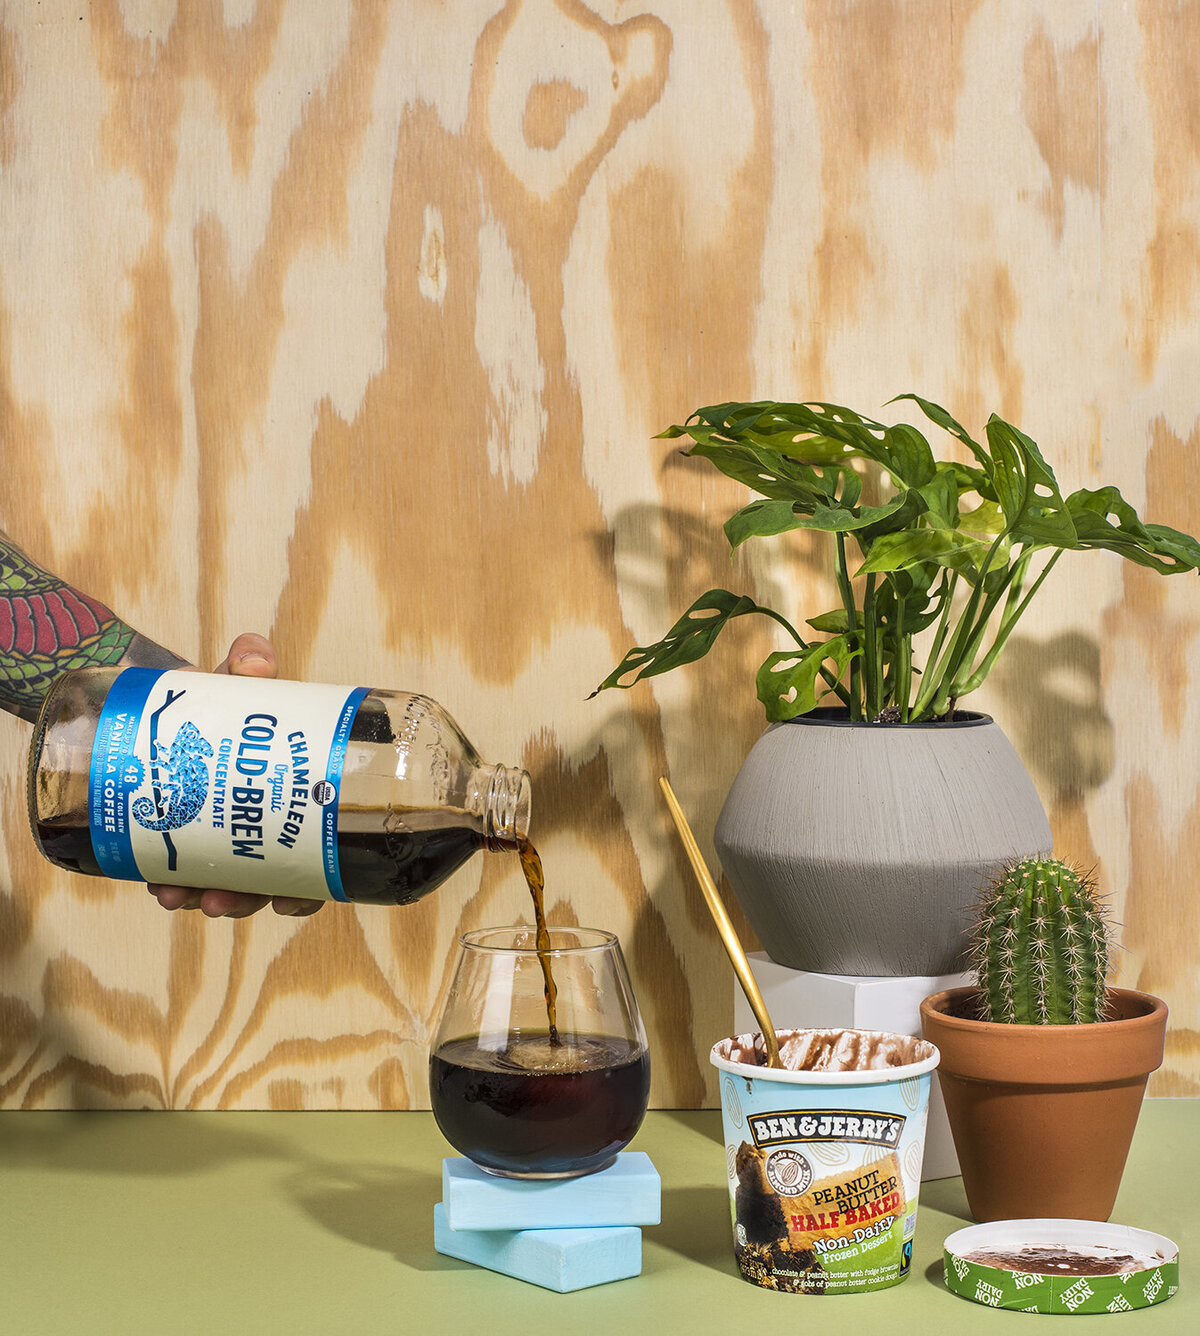 swiss cheese plant care and chameleon cold brew